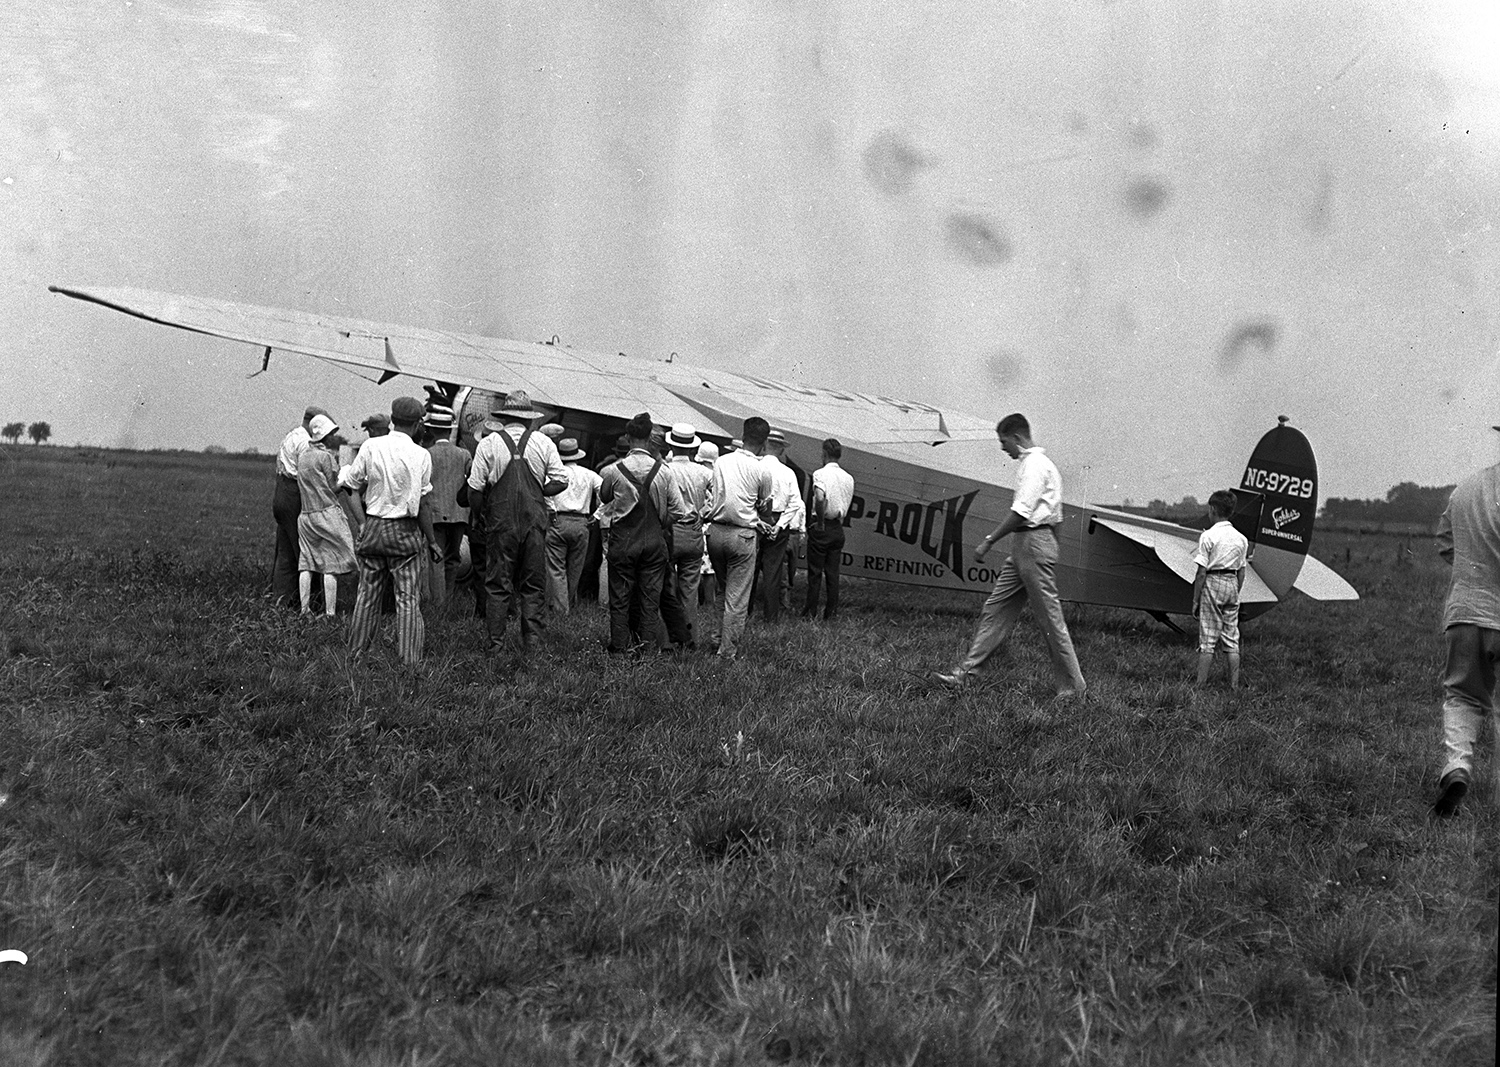 Deep Rock Refining Company airplane, municipal airport July 27, 1929. File/The State Journal-Register